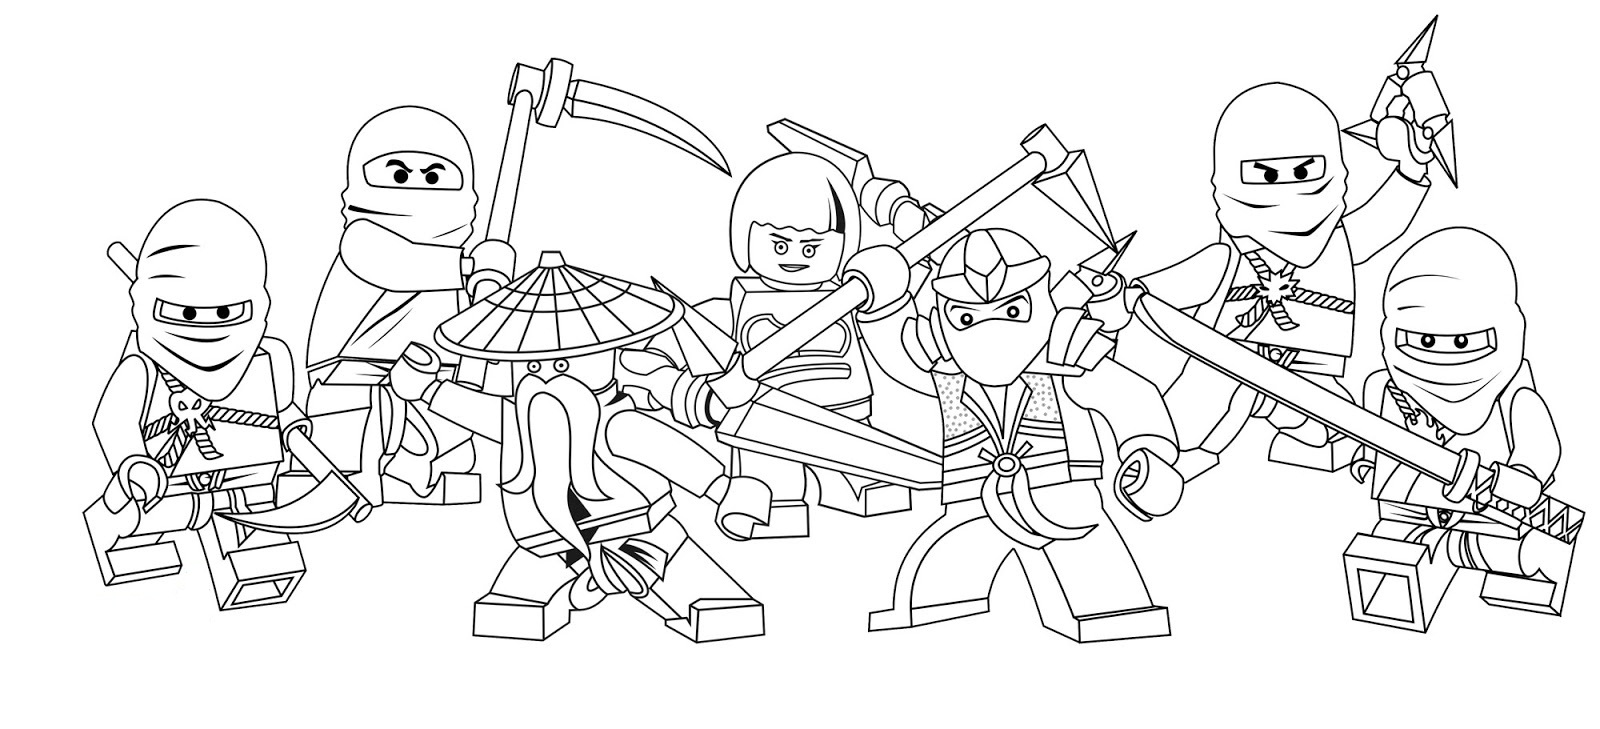 Uncategorized Ninjago Coloring Pages Free Printable free printable ninjago coloring pages for kids printable